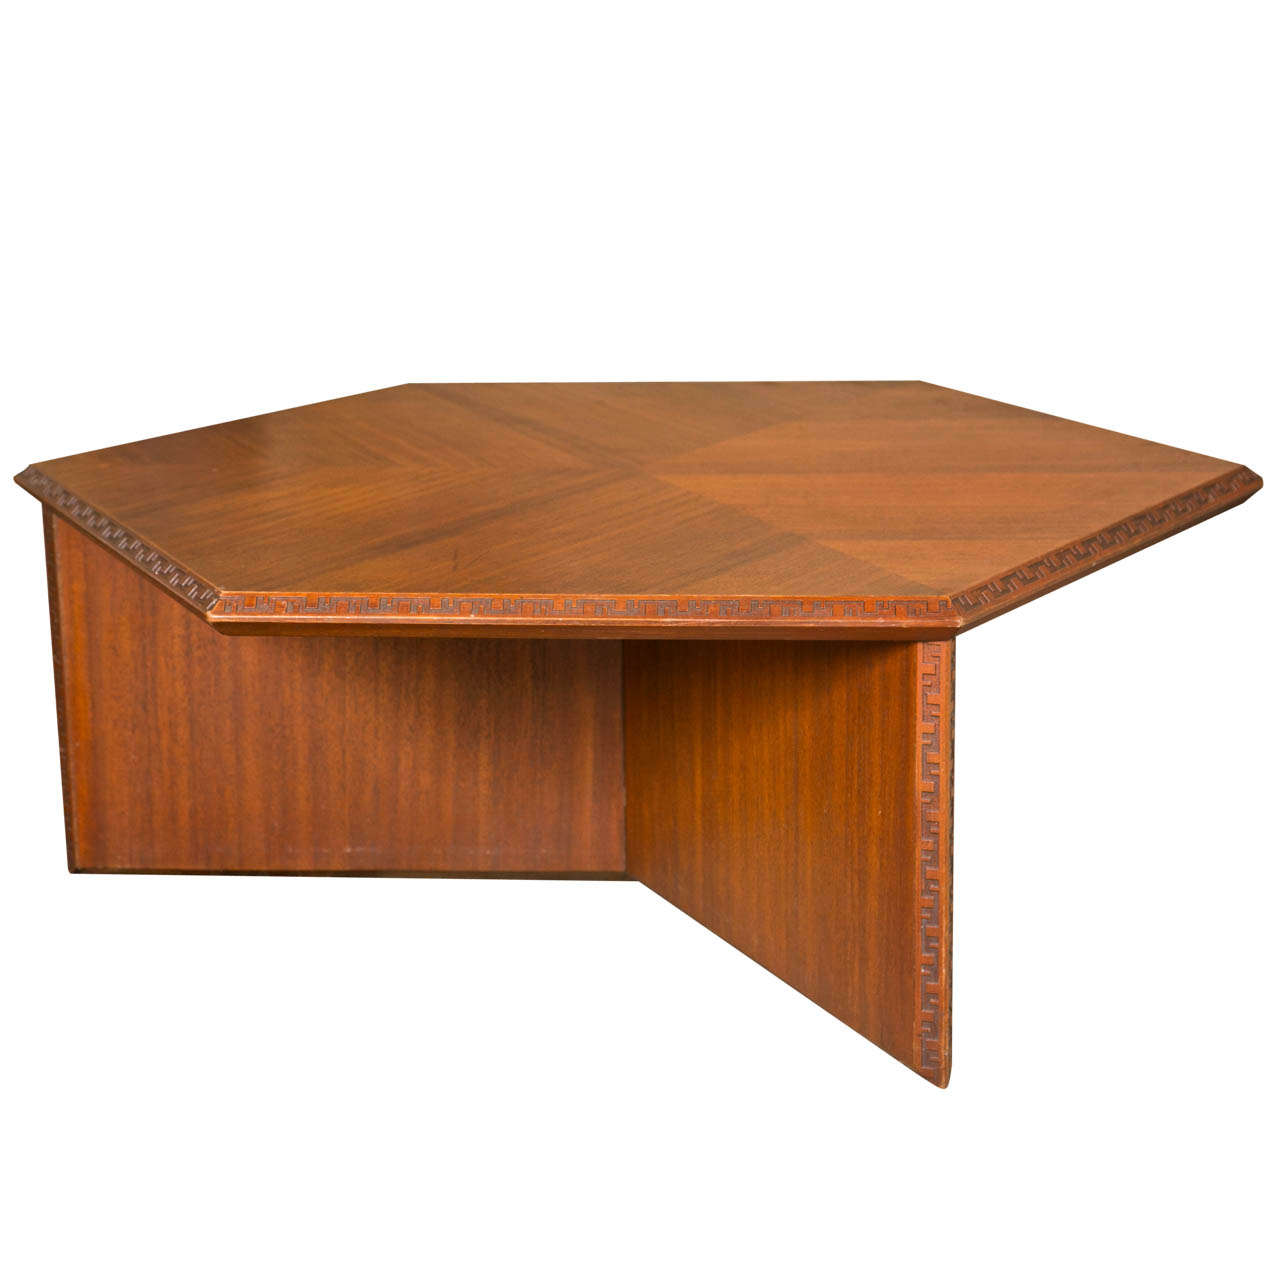 Coffee Table By Frank Lloyd Wright At 1stdibs